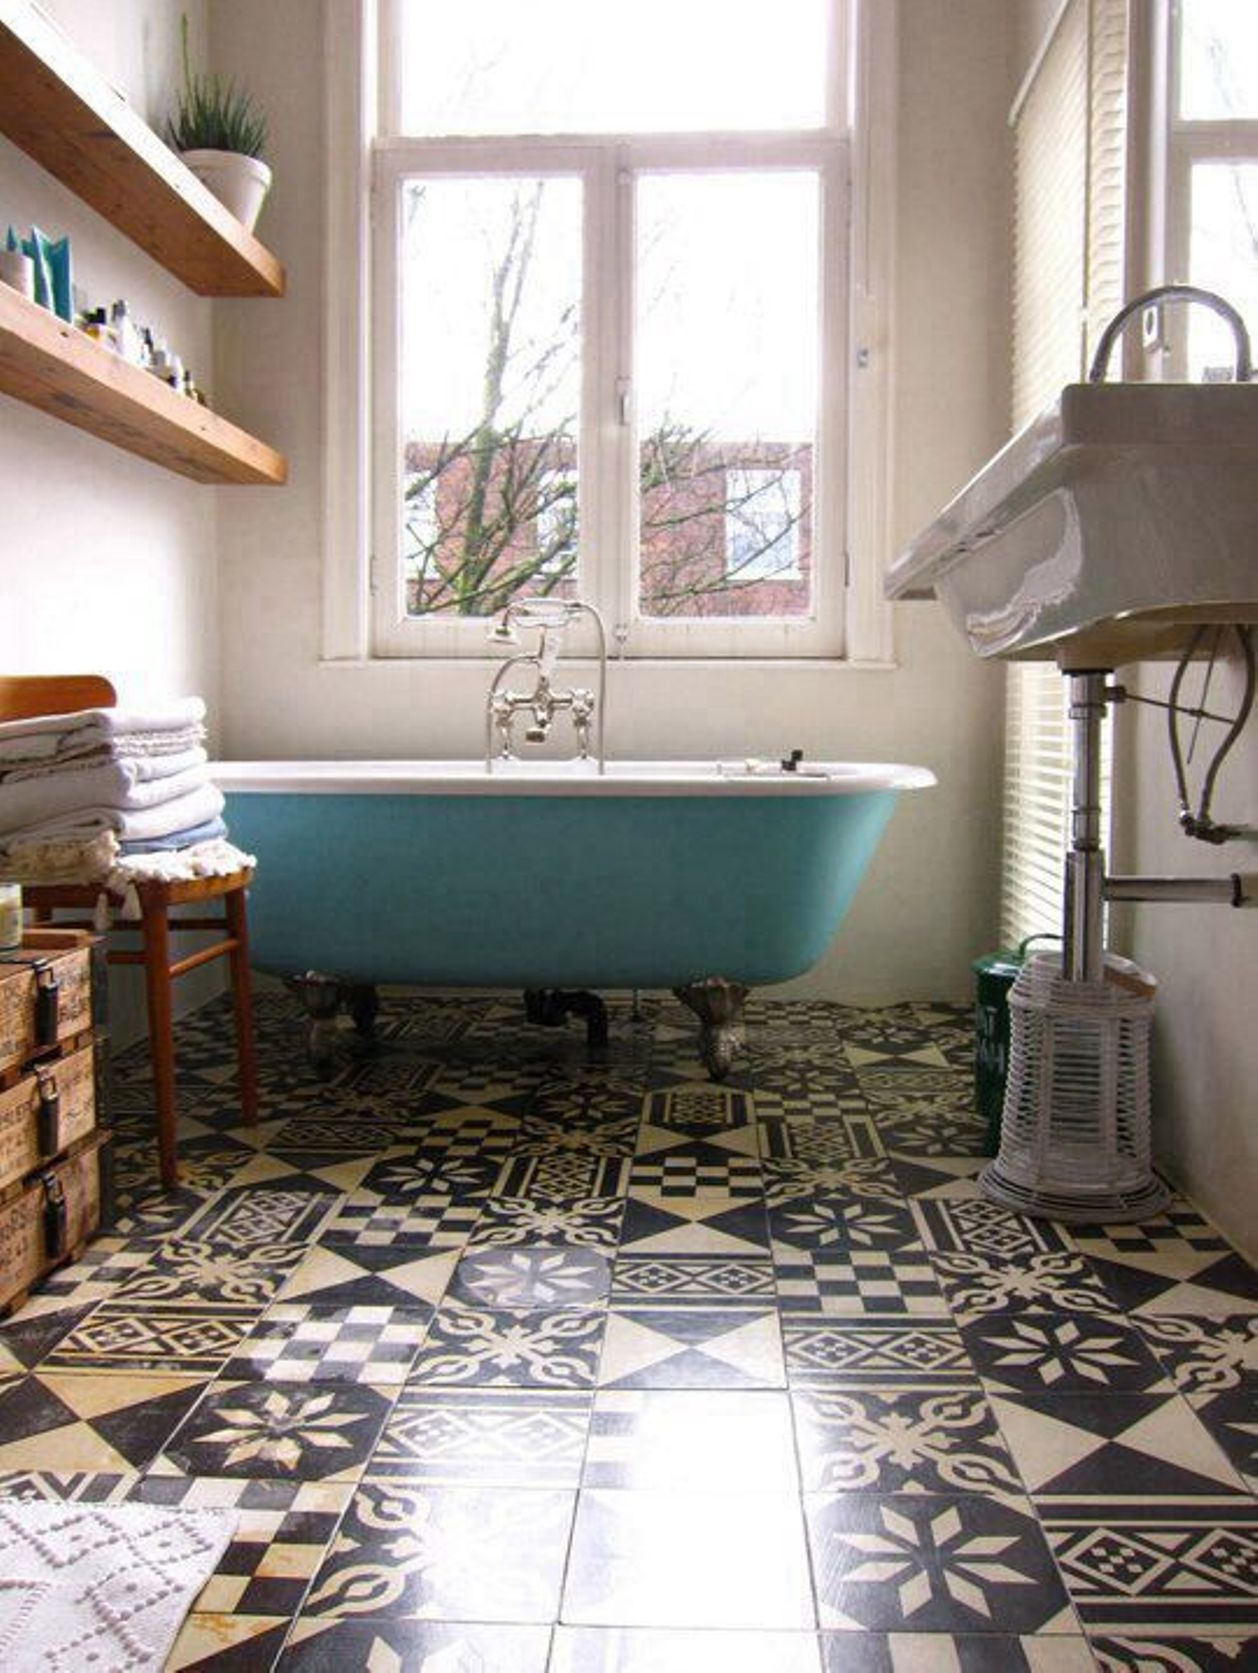 20 Great Pictures And Ideas Of Vintage Bathroom Floor Tile